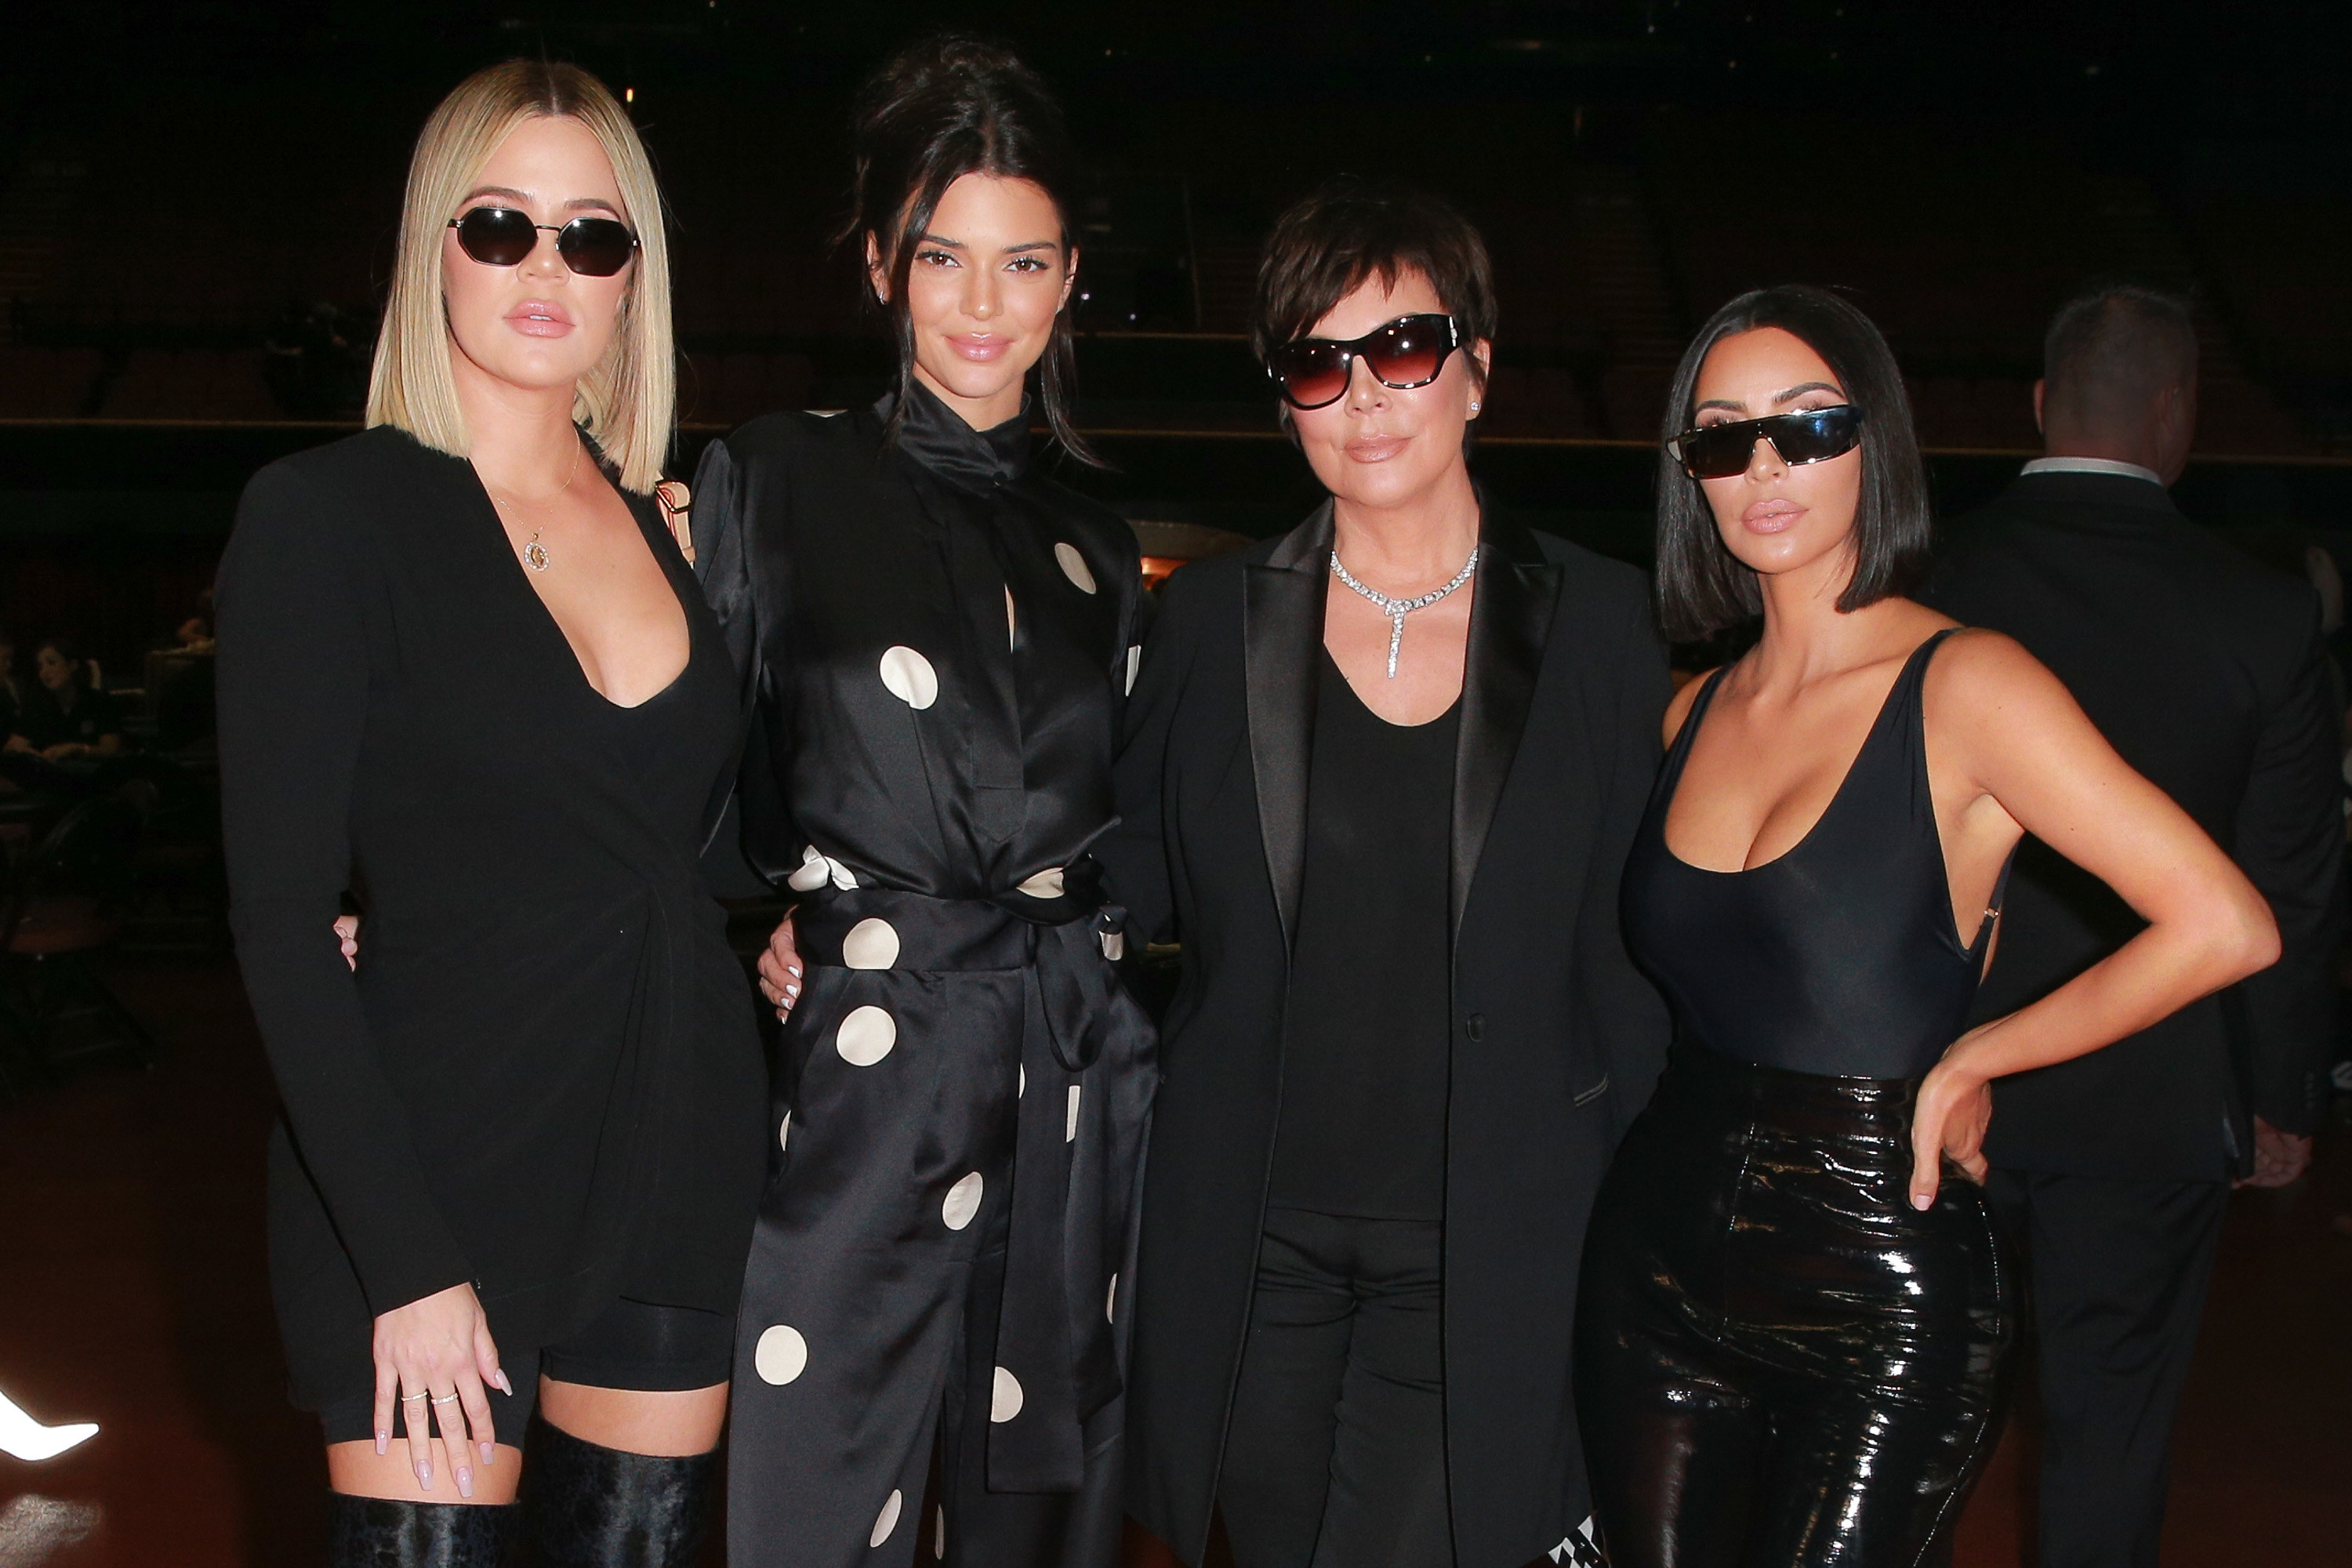 Khloé, Kendall, Kris, and Kim pose together in all black outfits